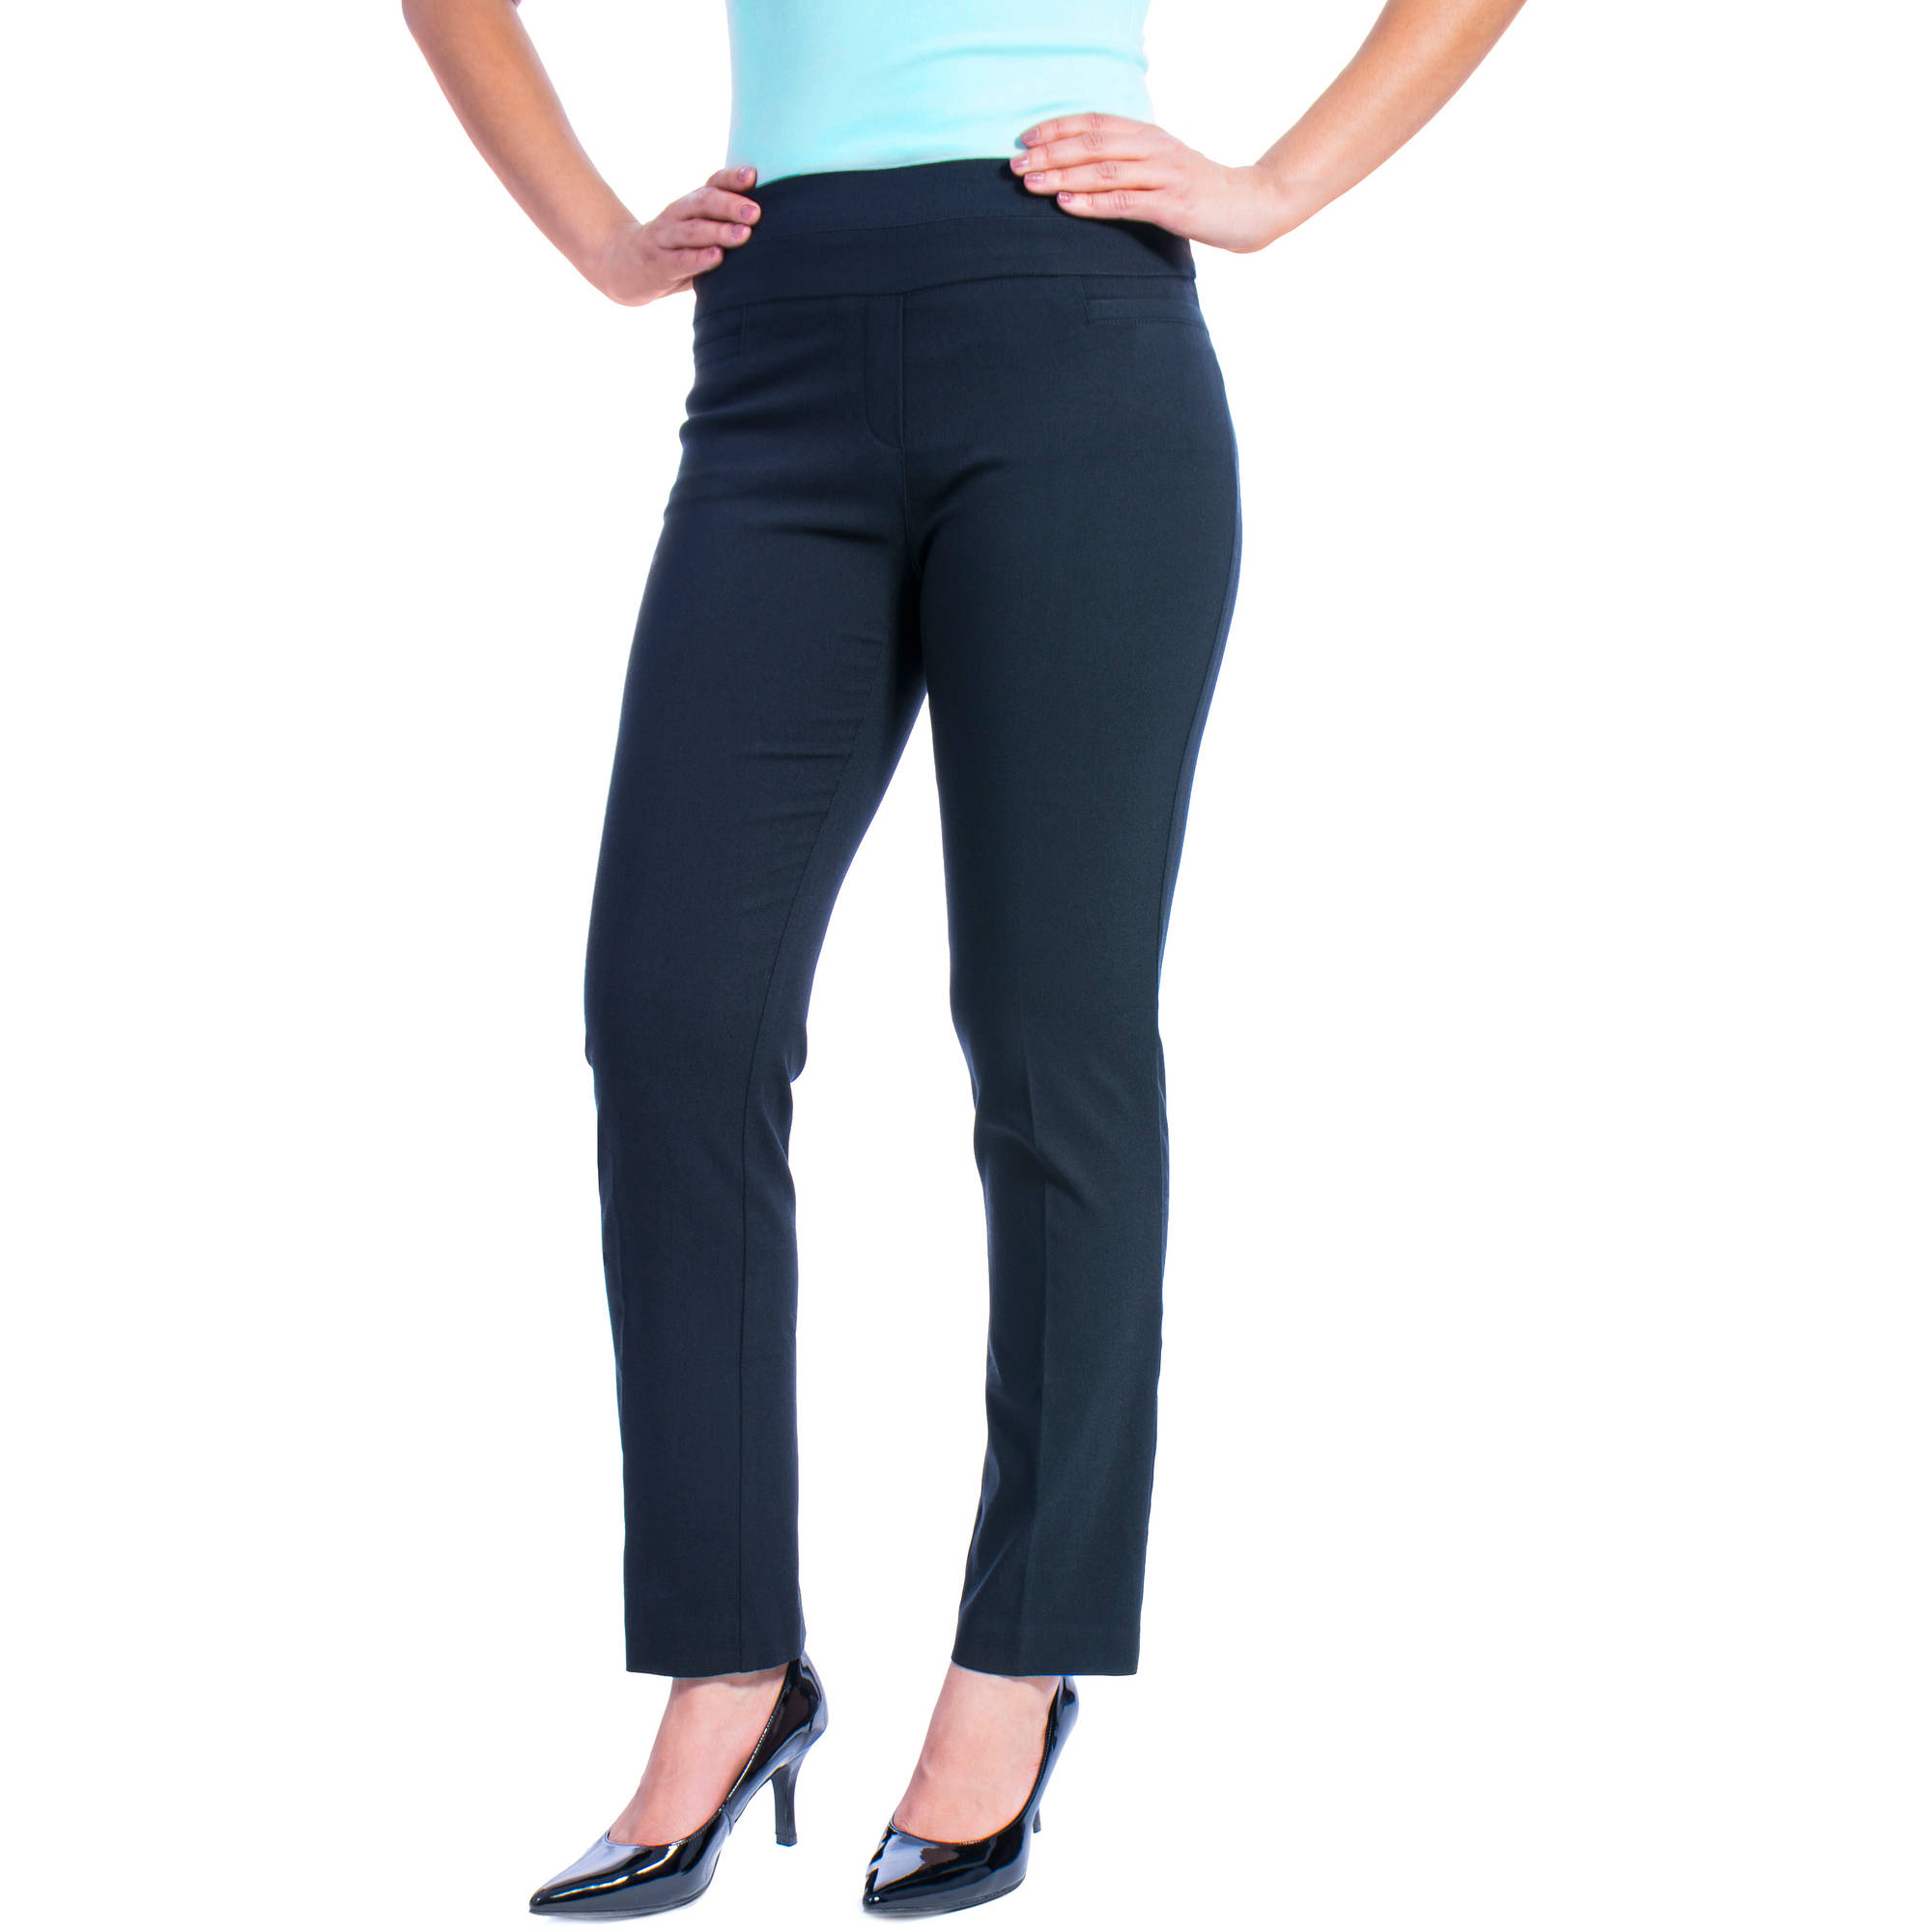 Stretchy Dress Pants For Women